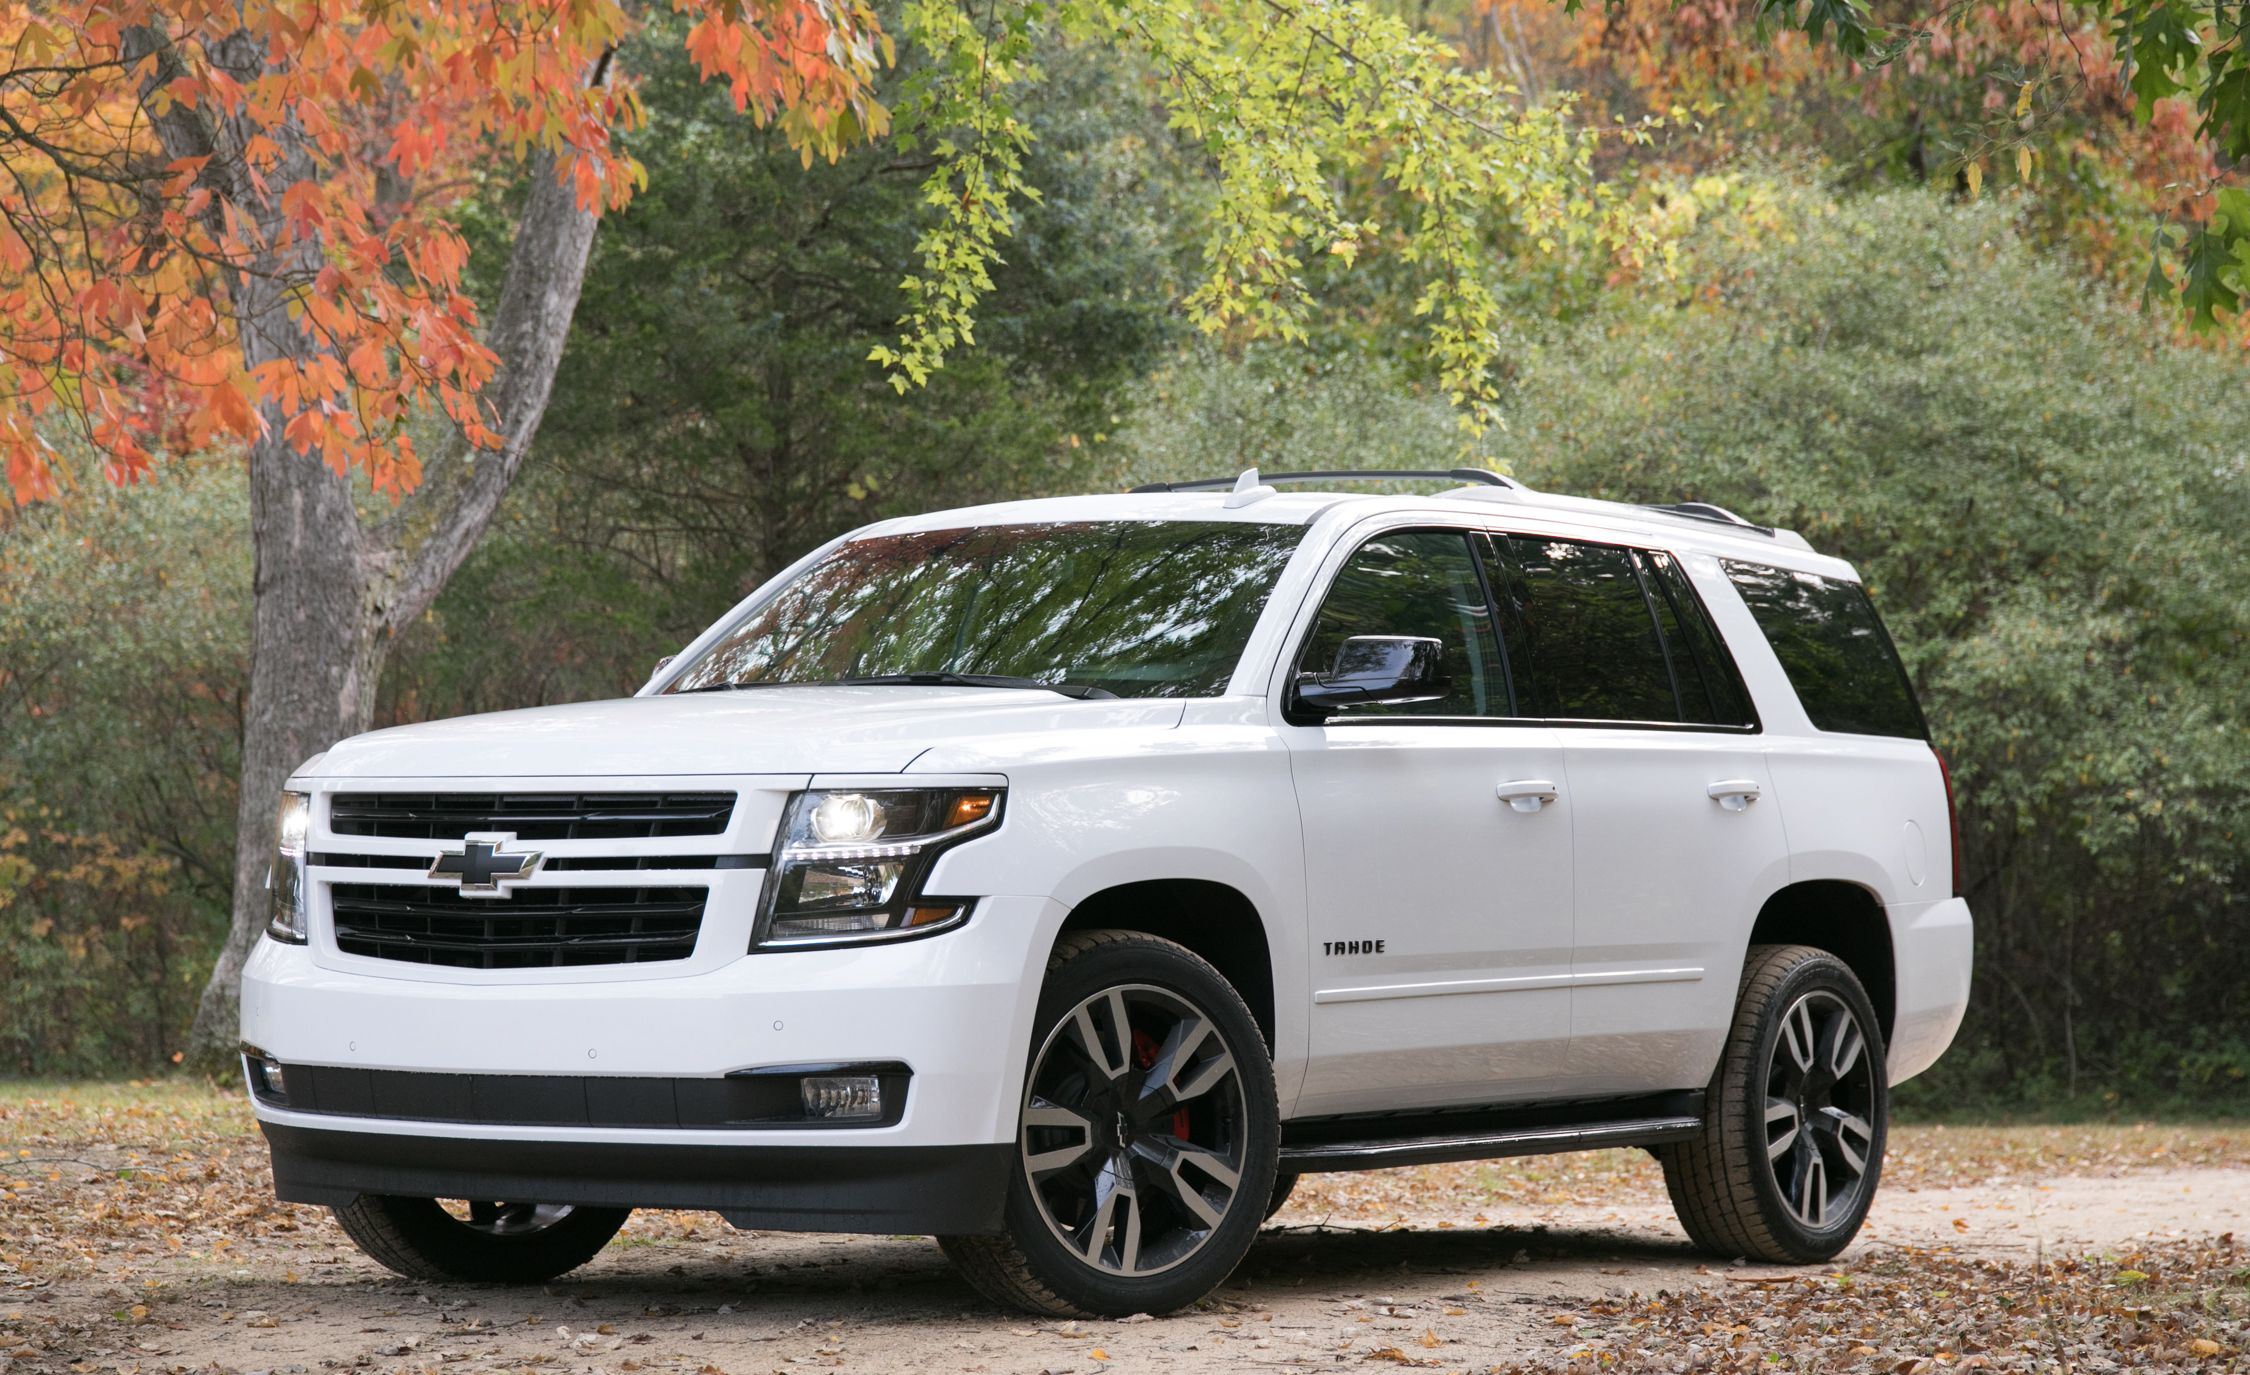 introduces detail media pages tahoe us suburban and news content vehicles en sep chevrolet